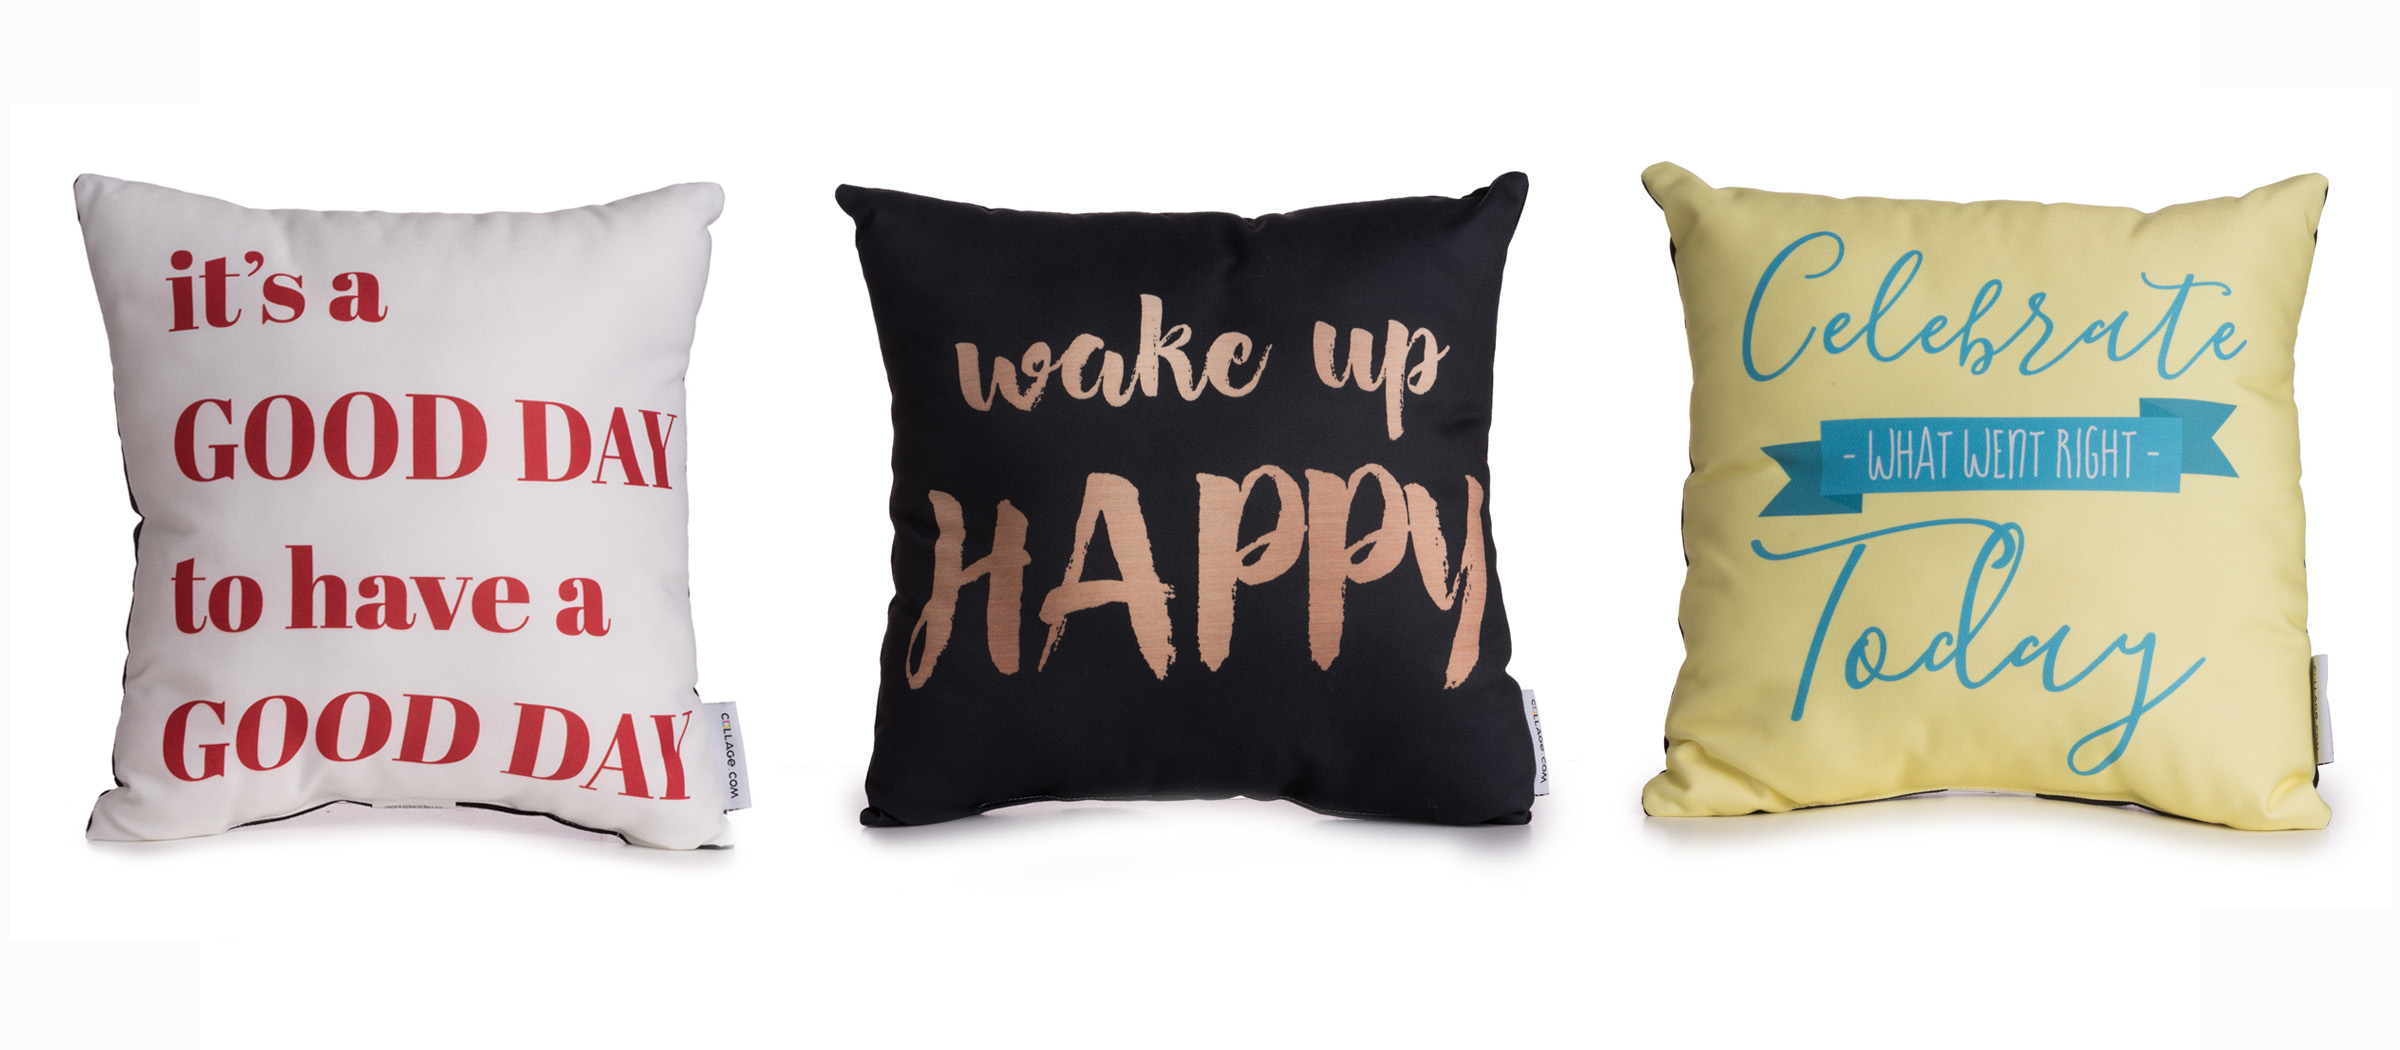 3 pillows with positive messages